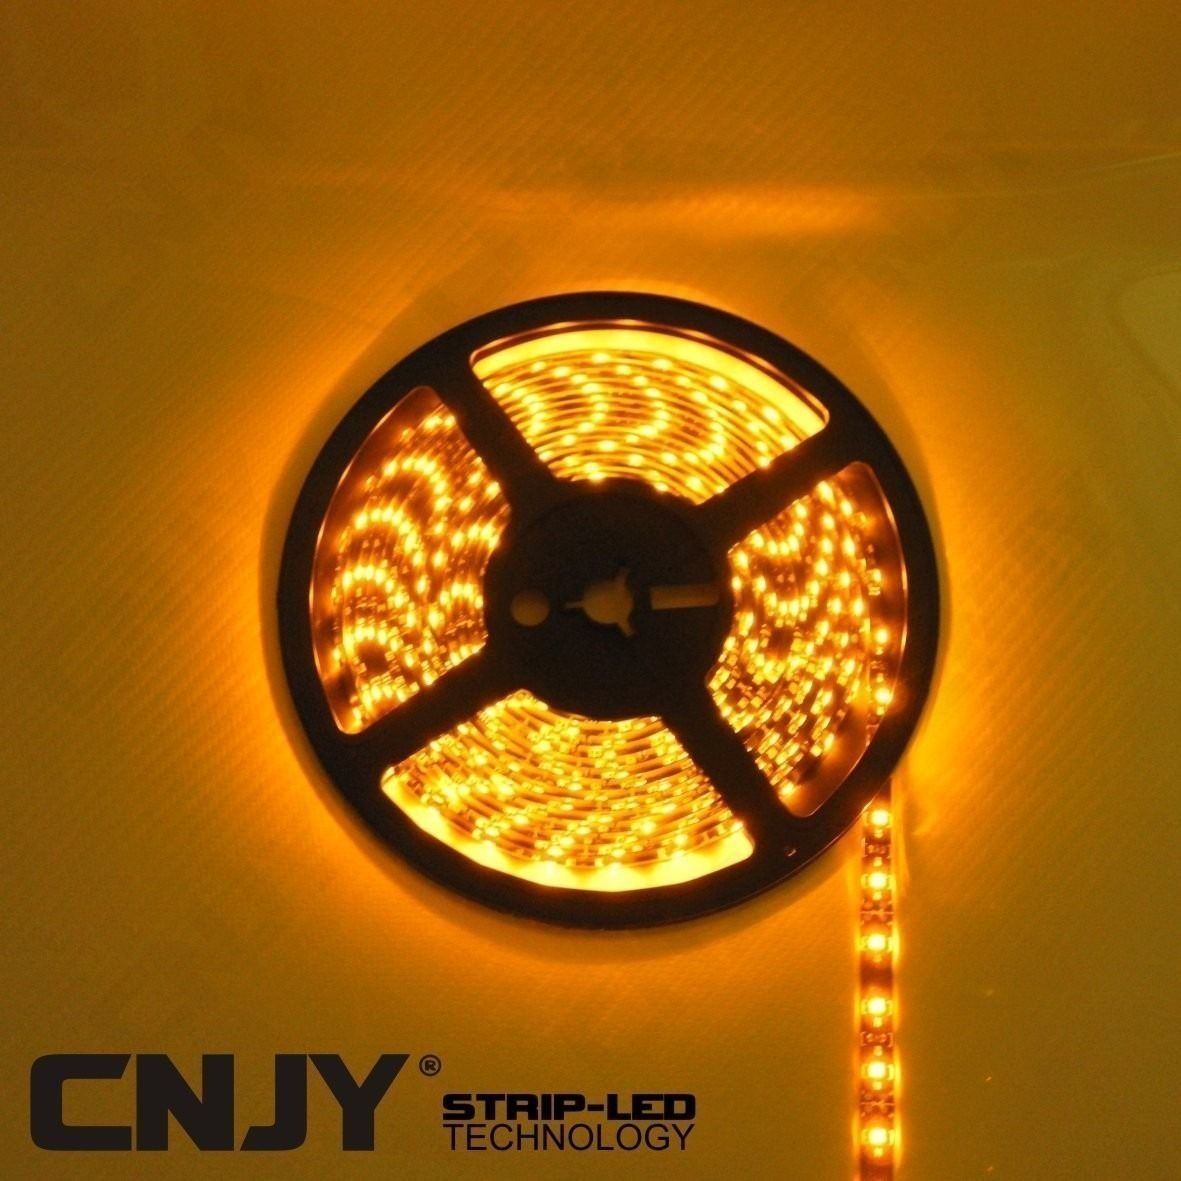 BANDE,LED,FLEXIBLE,STRIP,RUBAN,ROULEAU, DECORATION,12V,BAR,ORANGE,LED,DEL,SMD,ETANCHE,AQUARIUM,TUNING